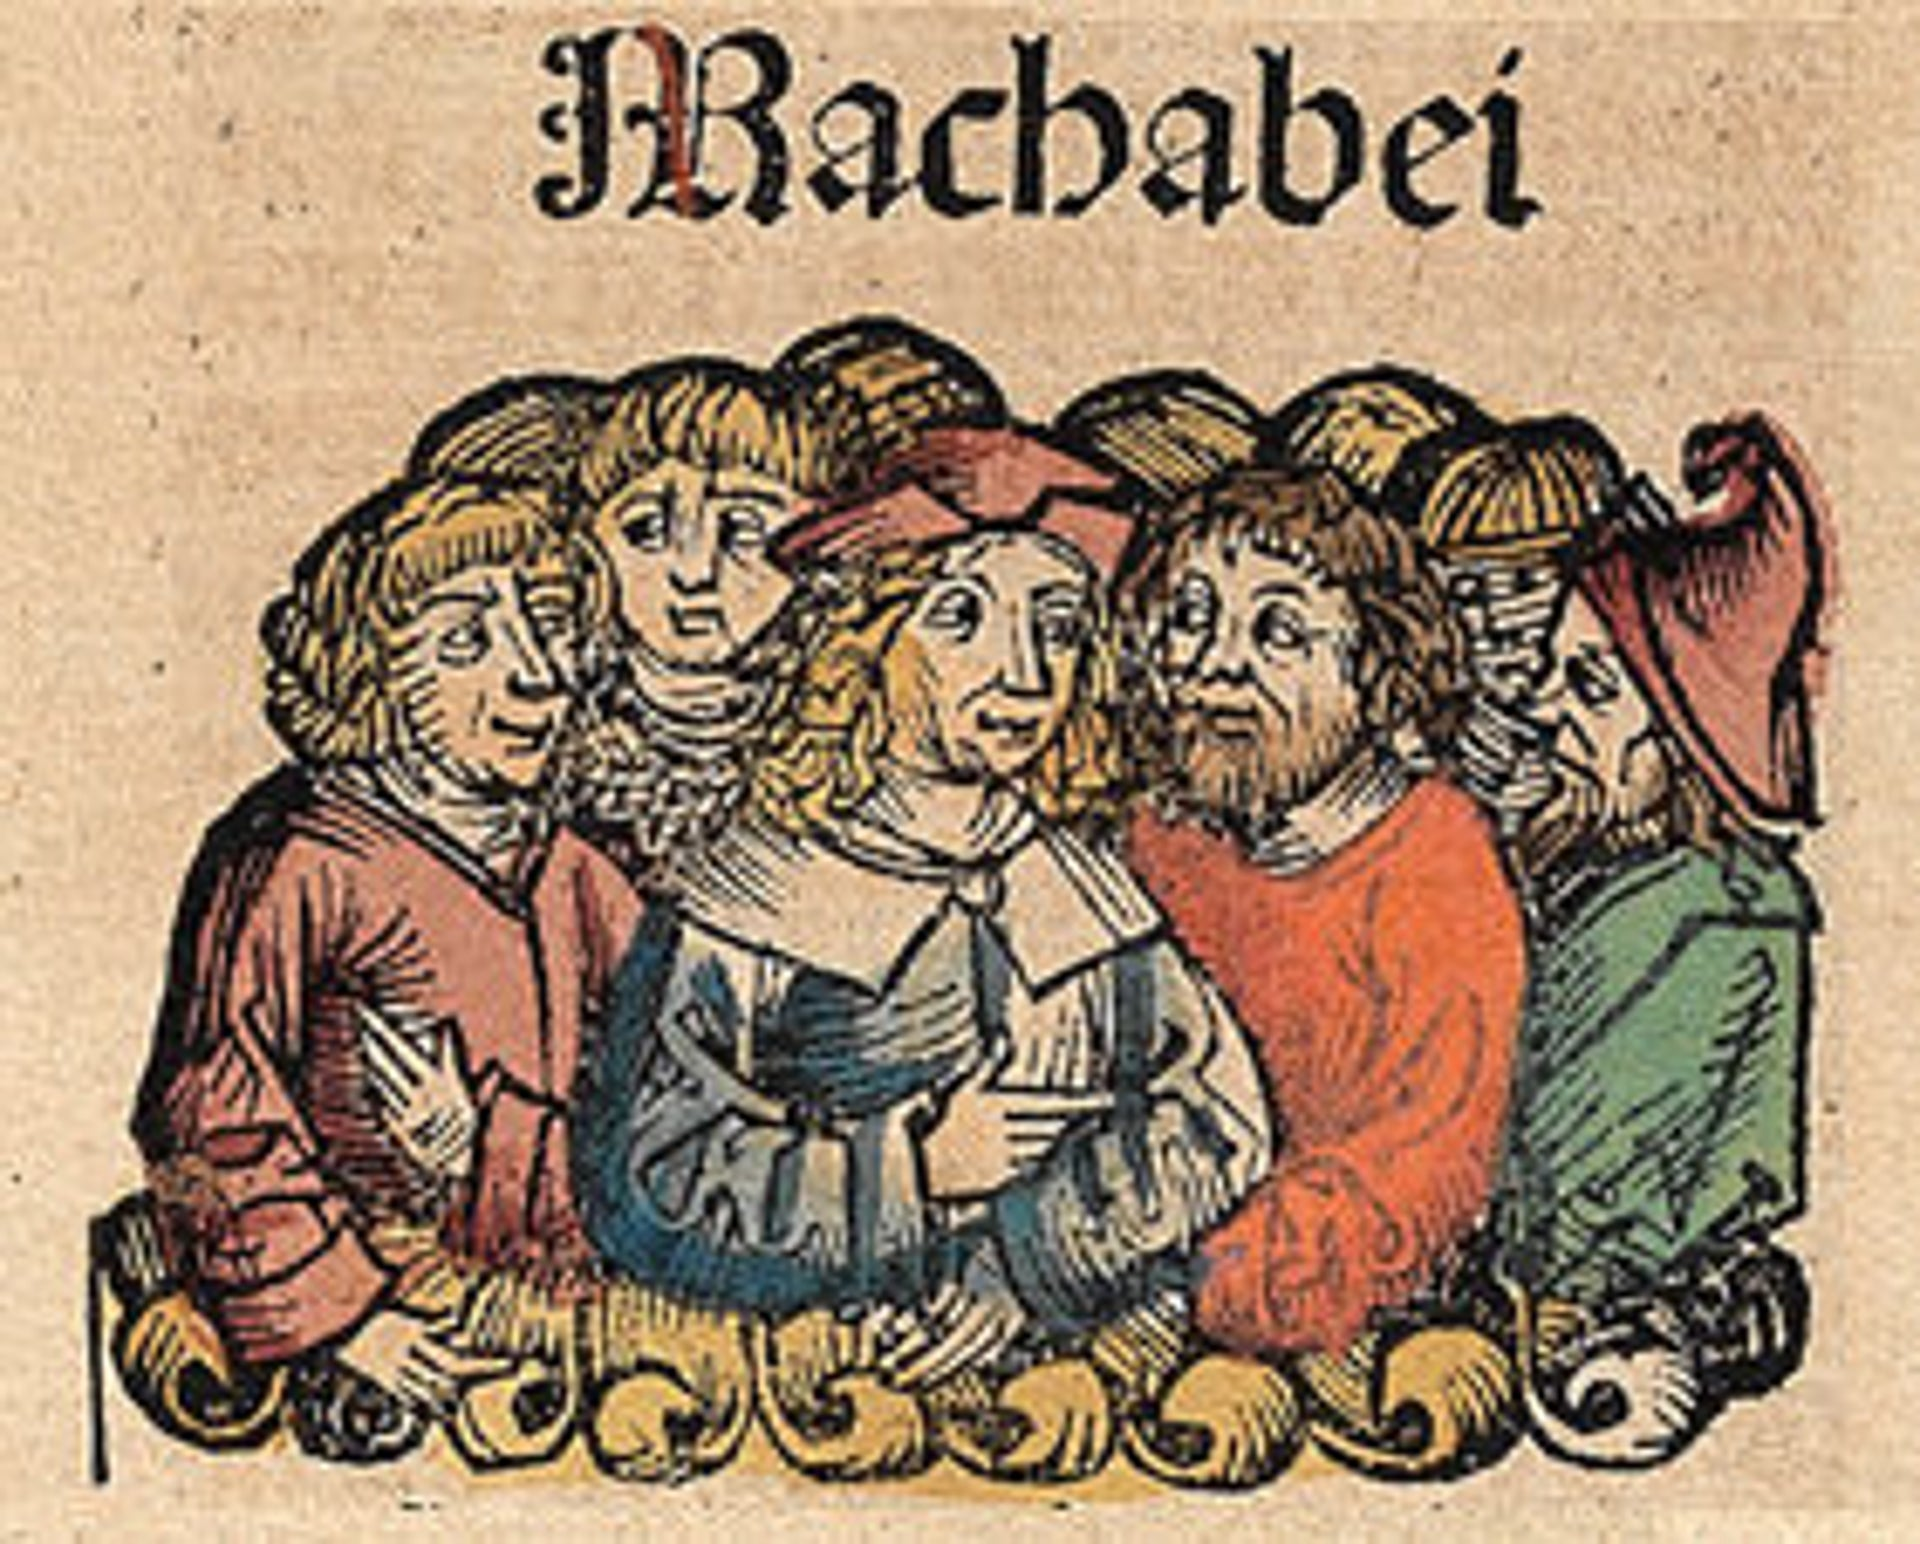 The Maccabees, from the Nuremberg Chronicle, by Hartmann Schedel (1493).